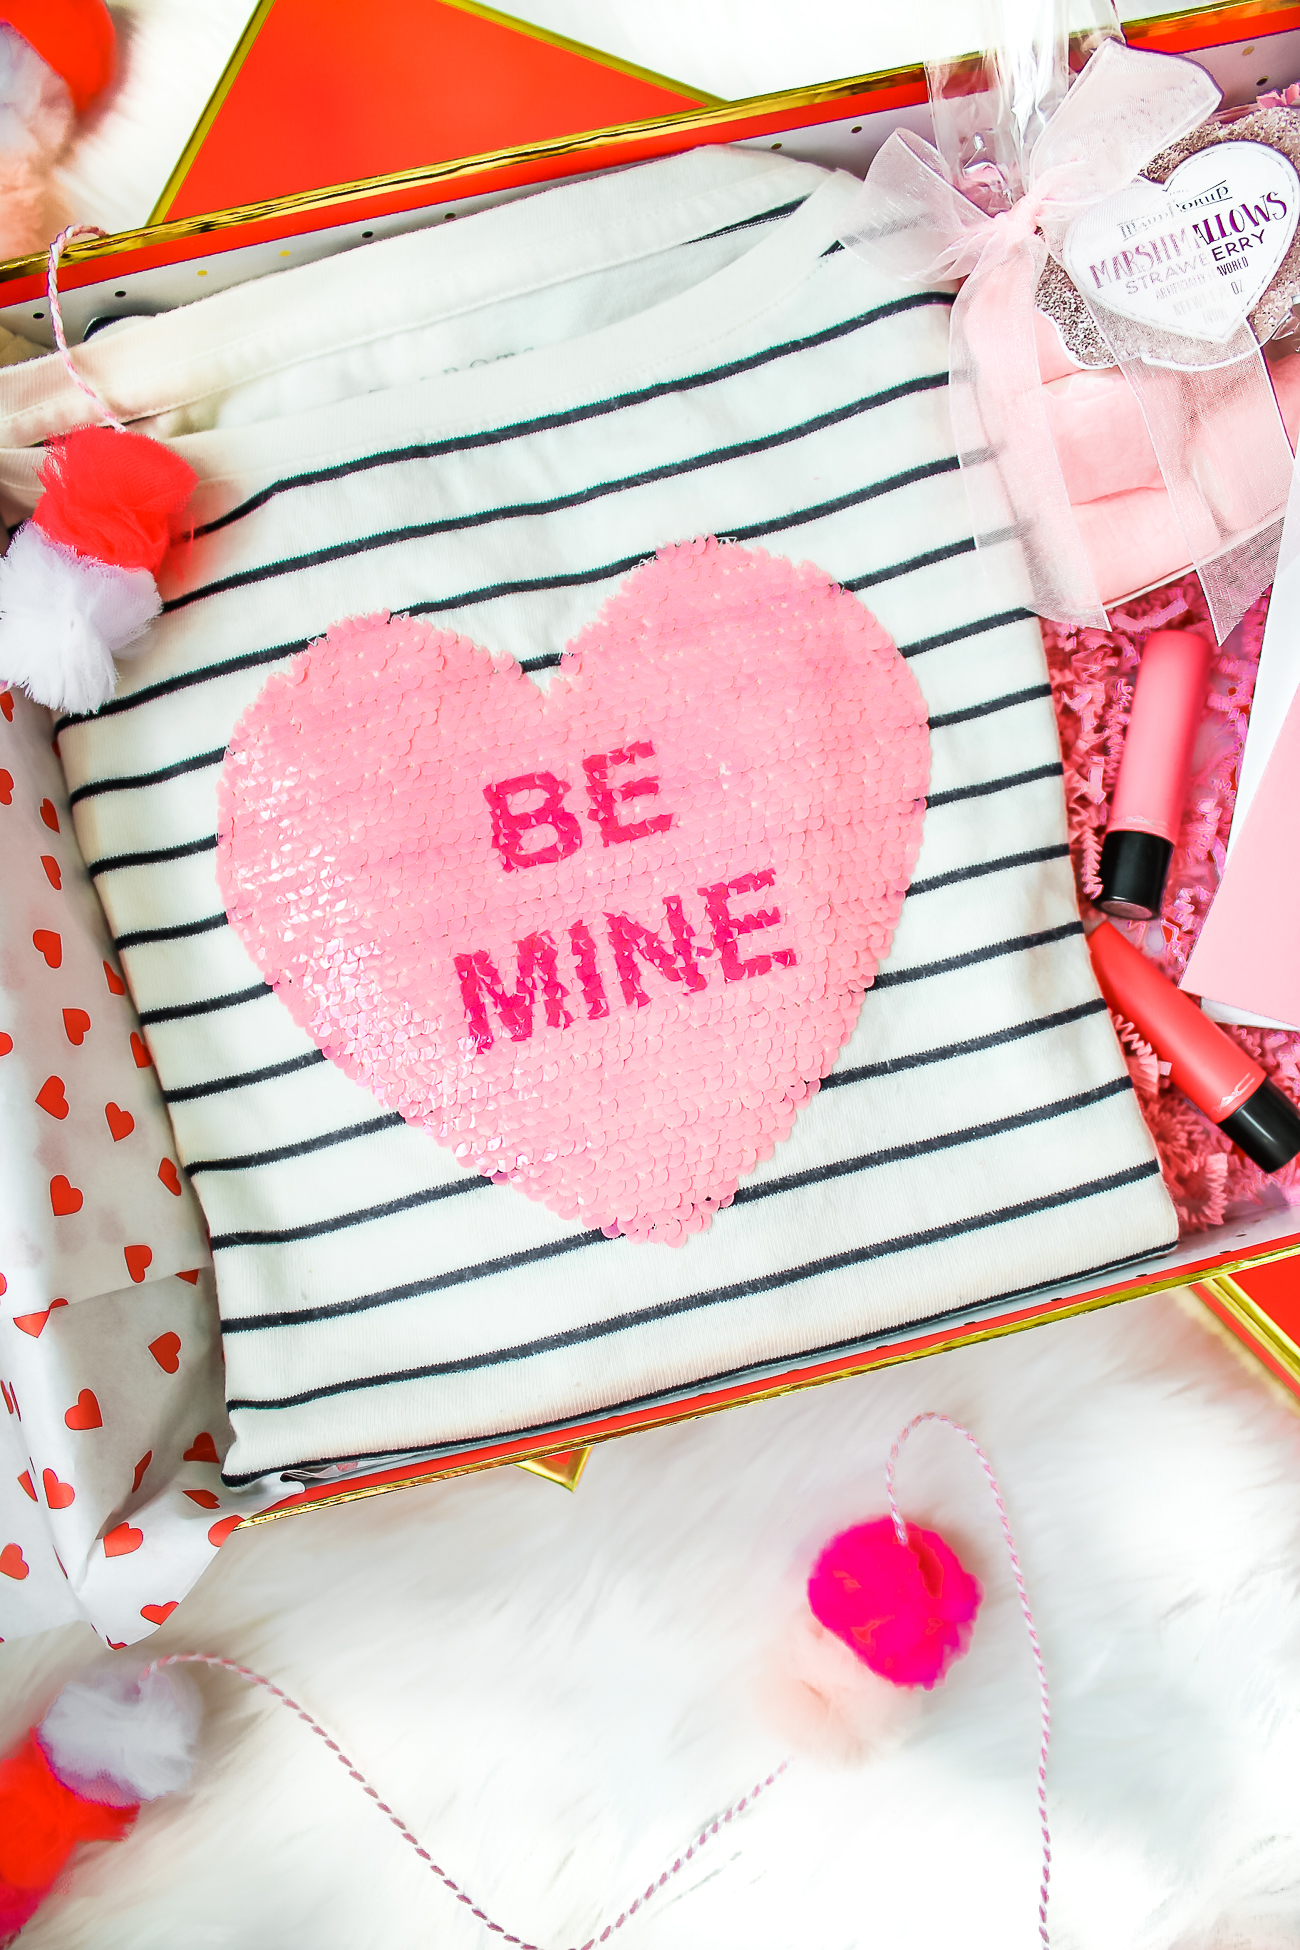 How to enjoy Valentine's Day as a single gal by fashion blogger Stephanie Ziajka from Diary of a Debutante, what to do on Valentine's Day when you are single, how to spend Valentine's Day alone